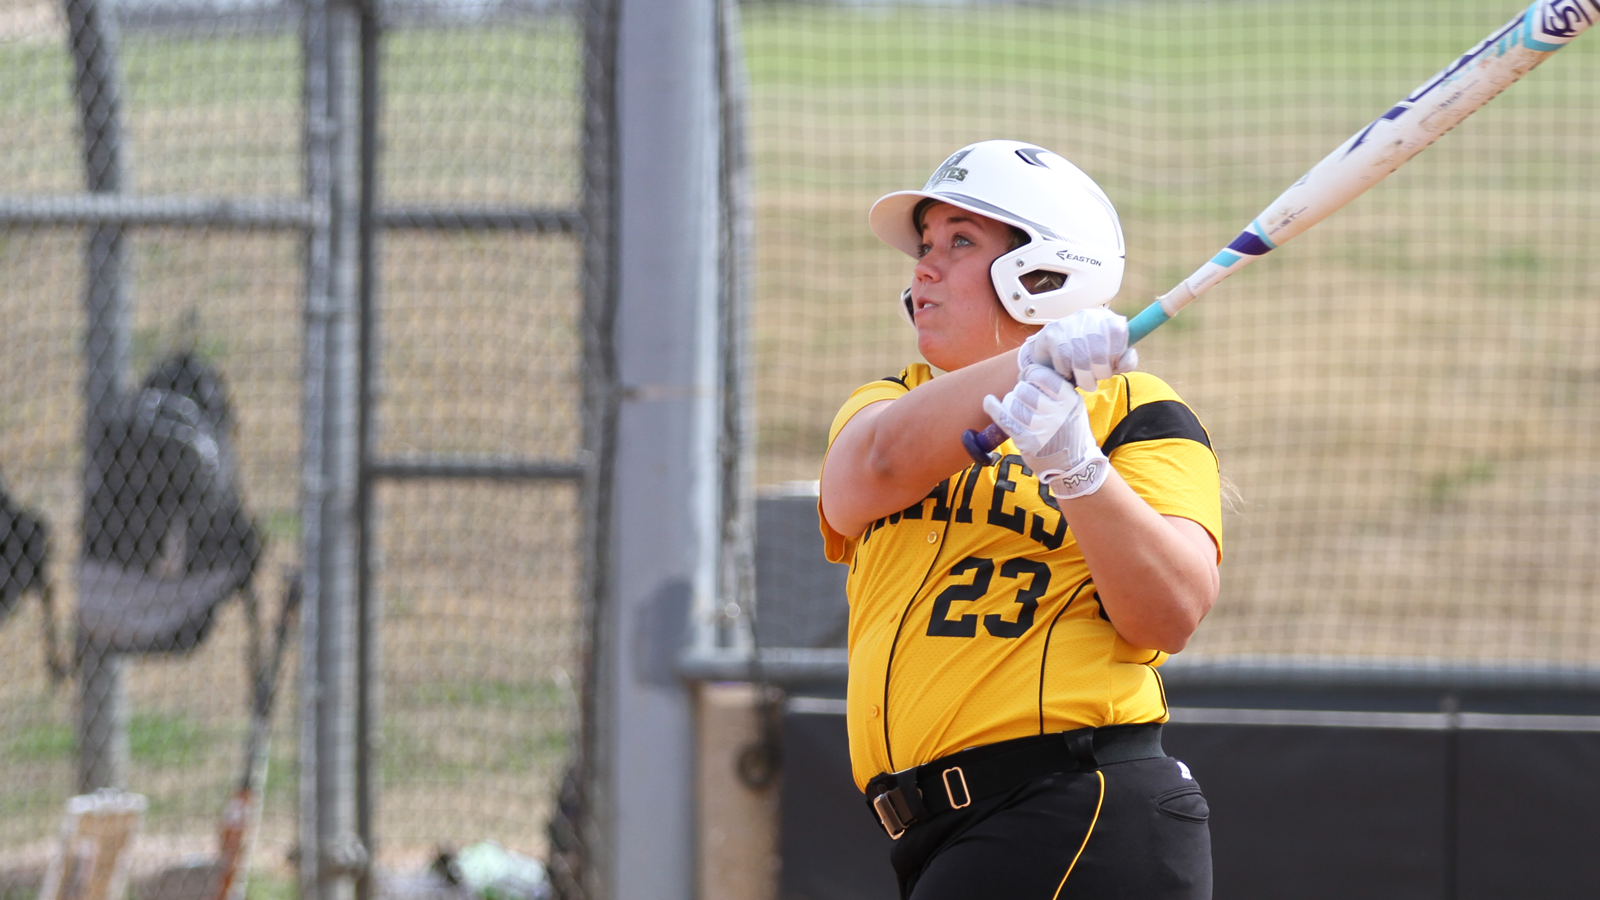 Softball completes sweep in dramatic fashion to extend win streak